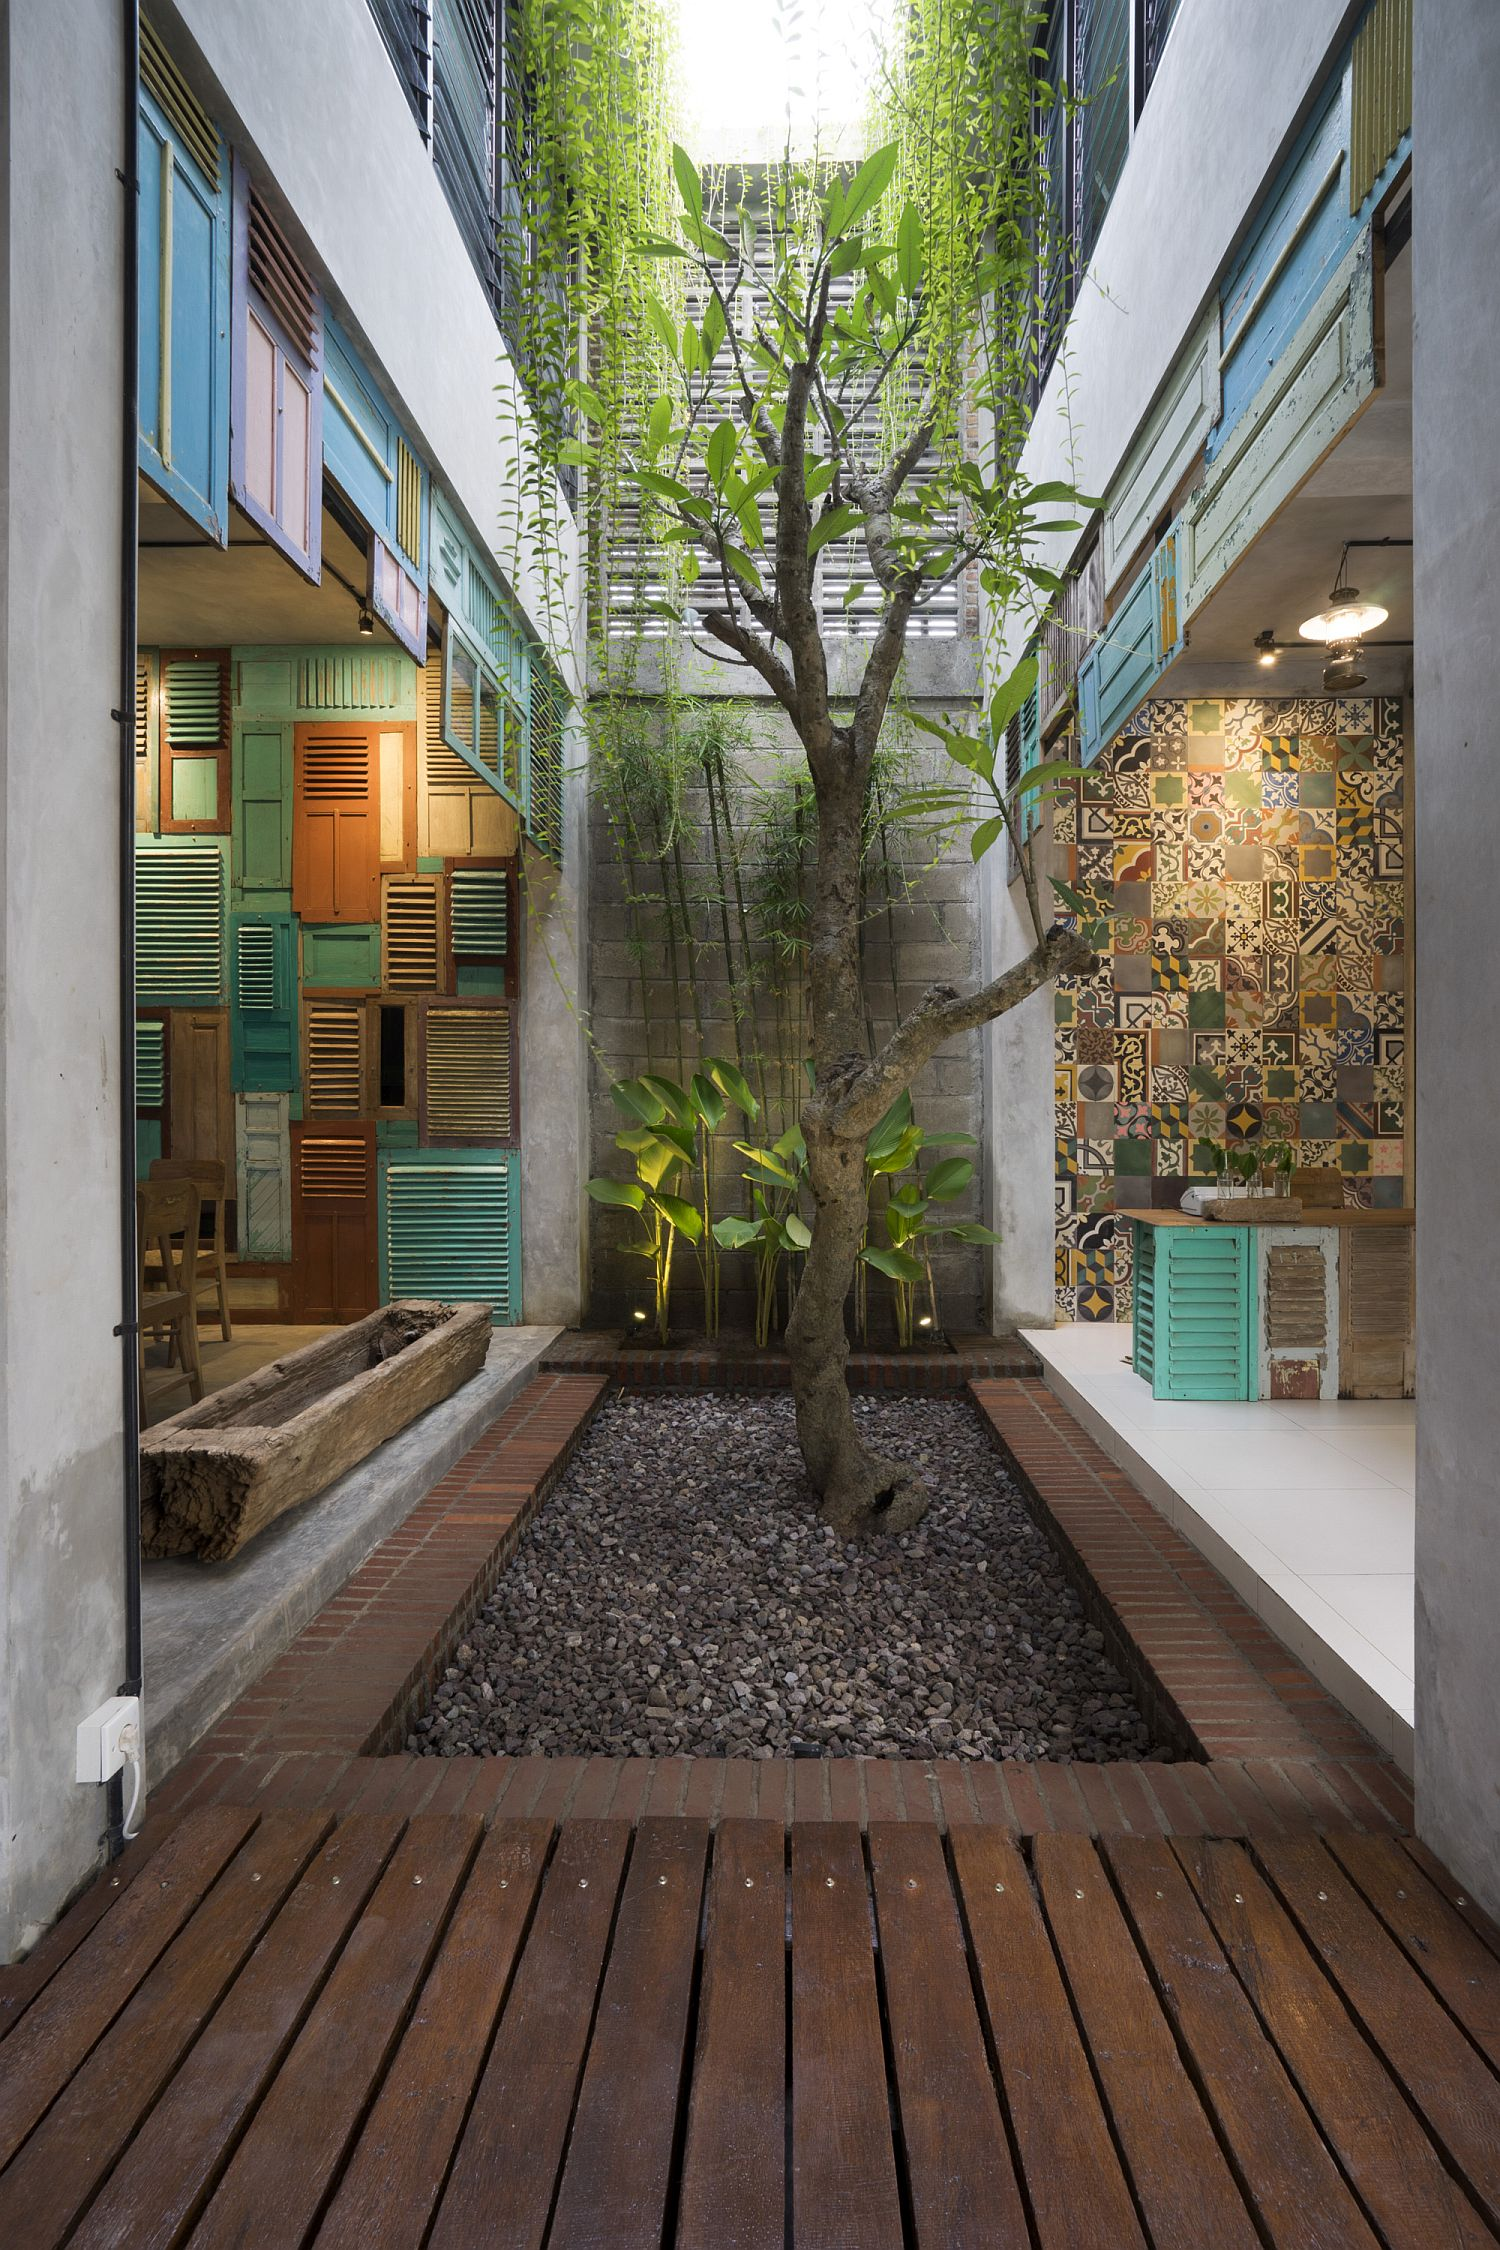 Vintage wooden panels and awesome patterned tiles bring color and uniqueness to this modern atrium